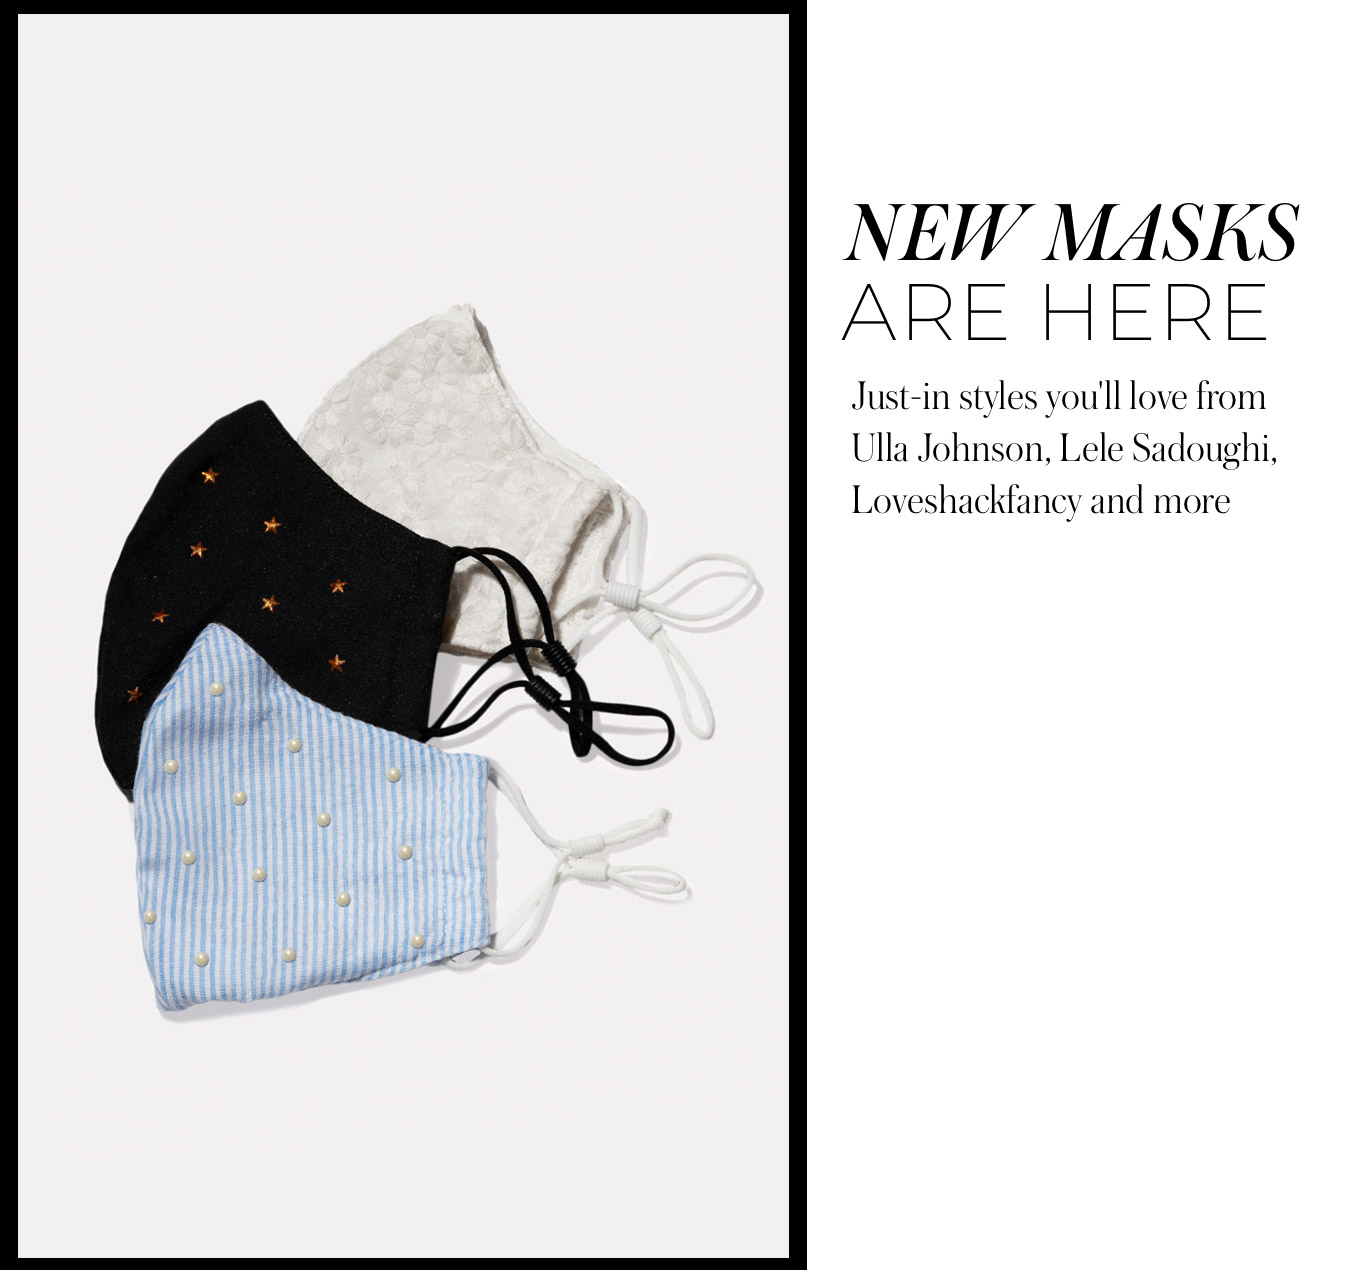 New Masks Are Here Just-in styles you'll love from Ulla Johnson, Lele Sadoughi, Loveshackfancy and more